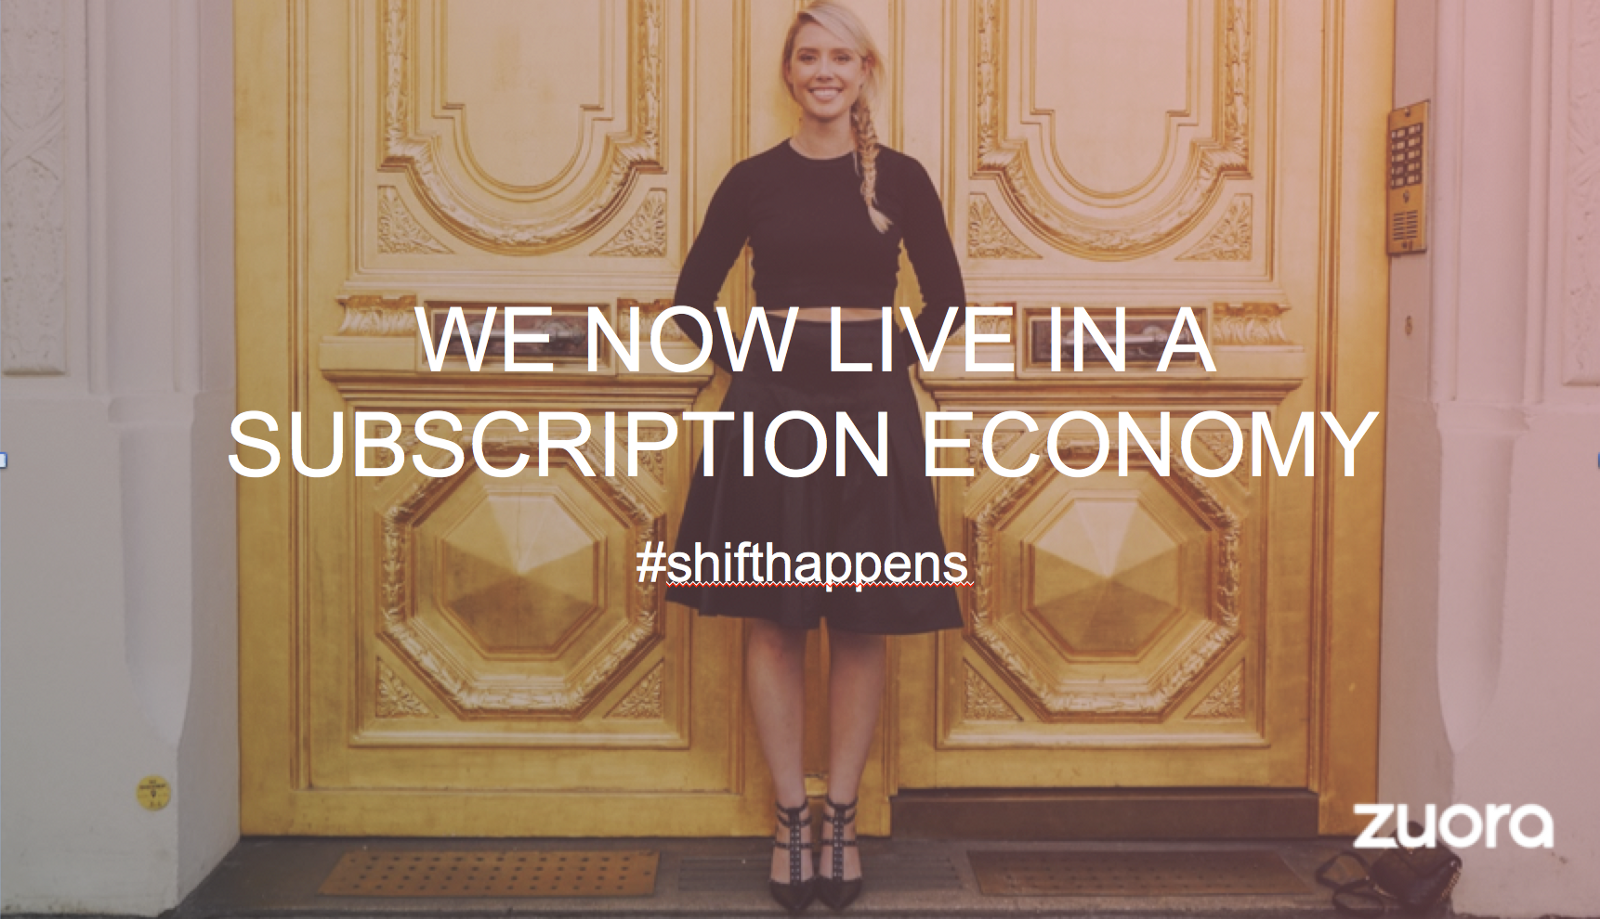 We now live in a subscription economy. Shift happens. Zuora sales deck